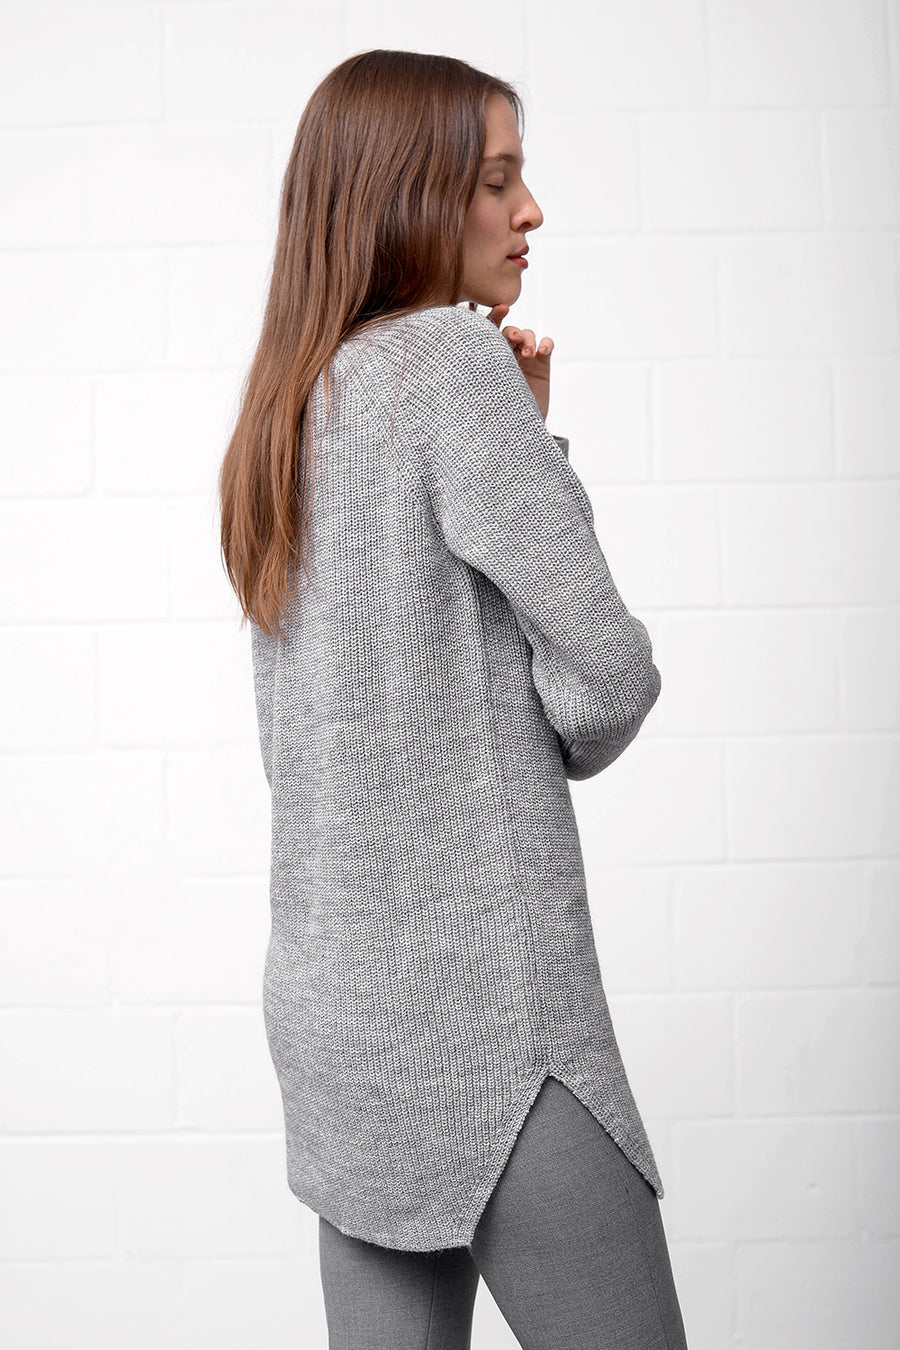 Aran 17 Dress - grigio